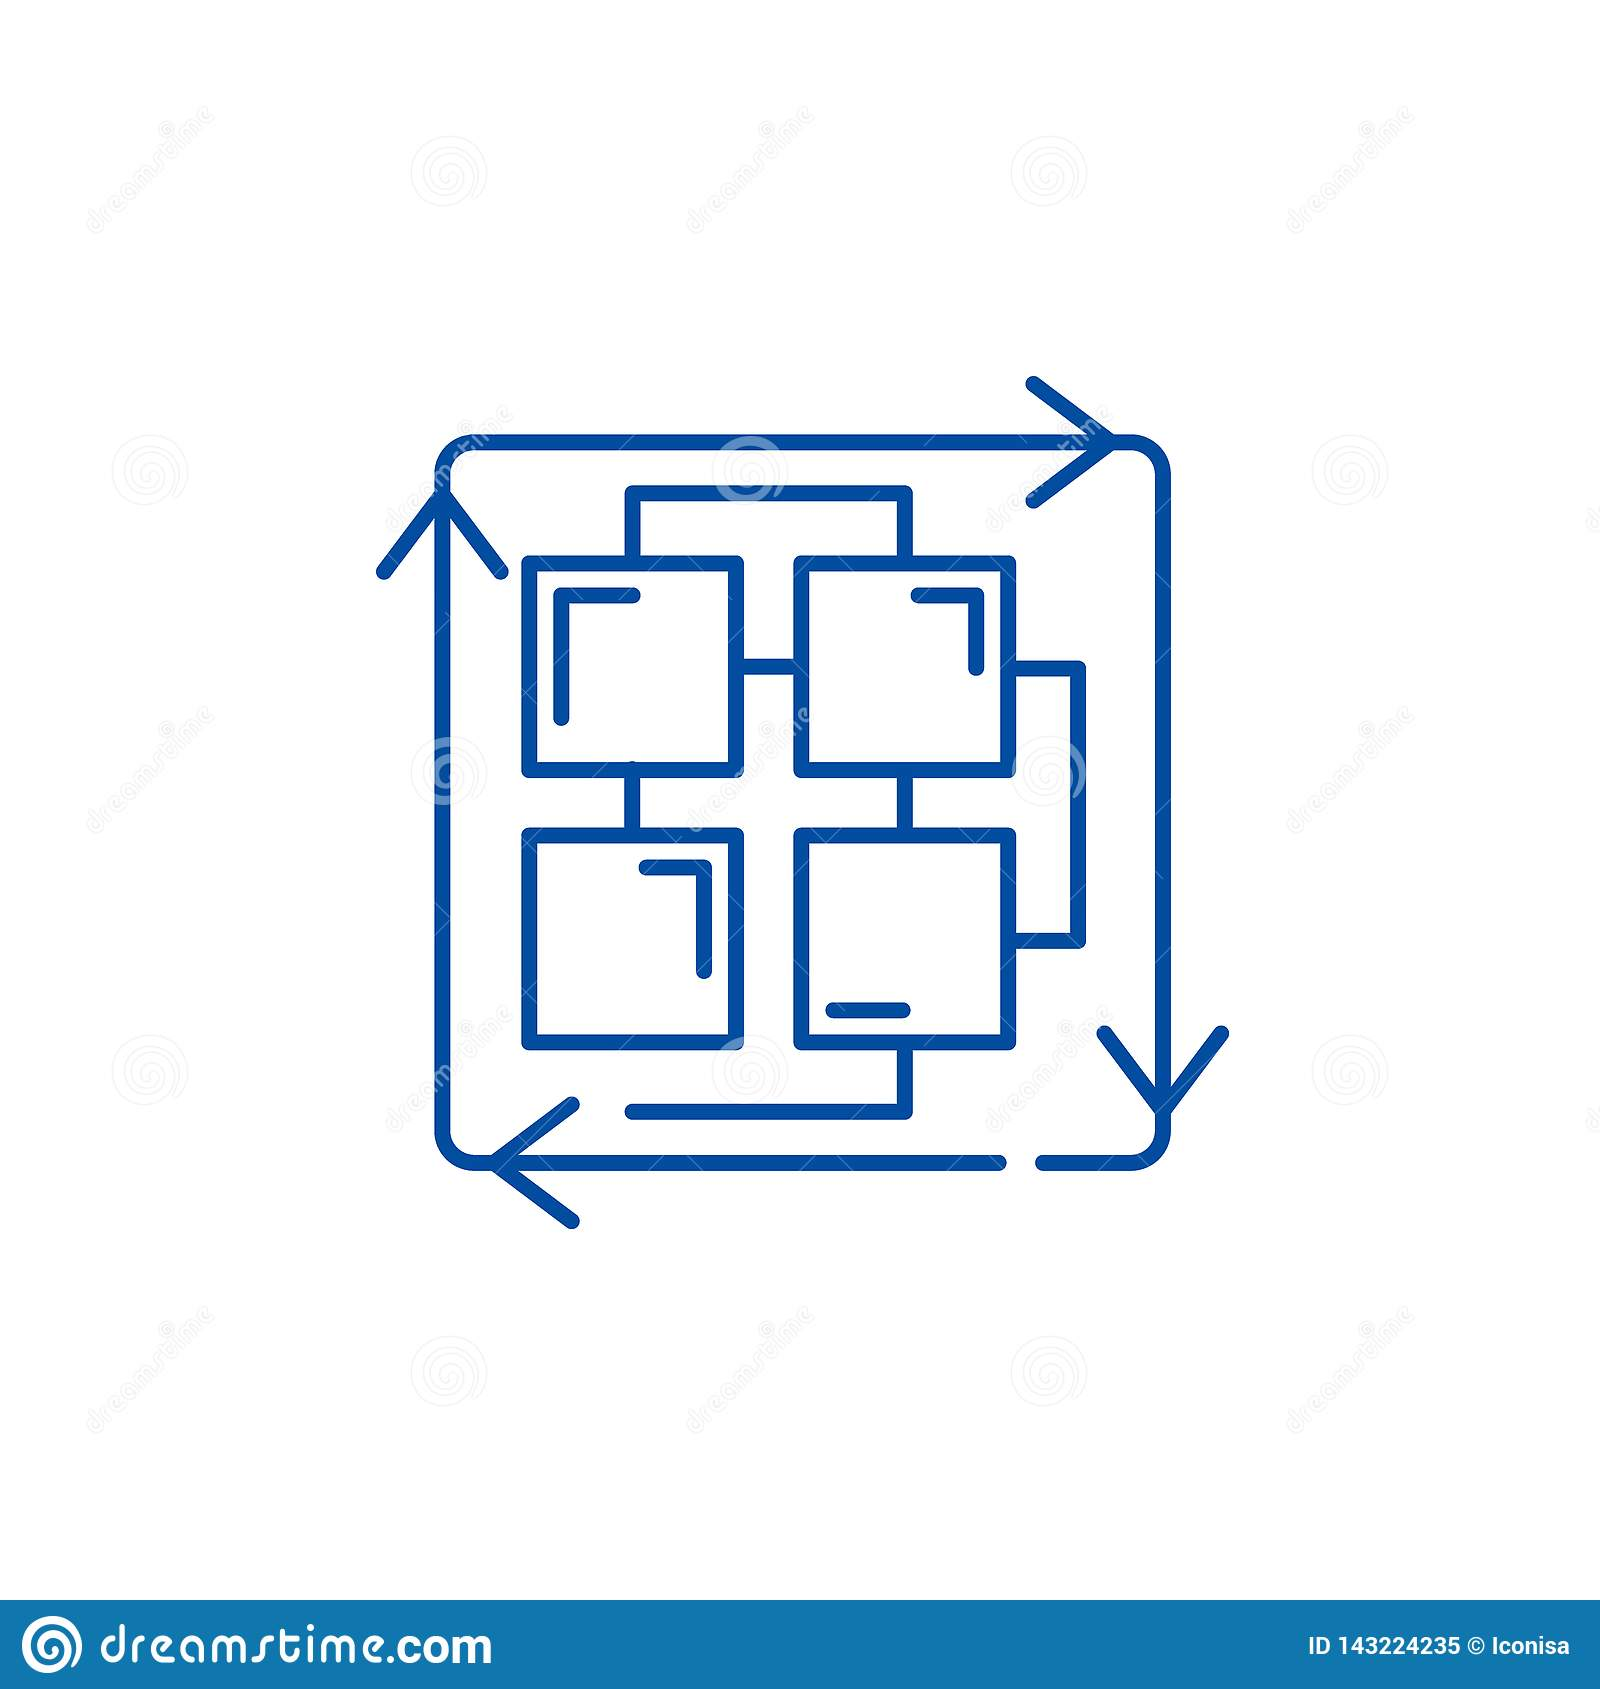 Sequence of processes line icon concept. Sequence of processes flat vector symbol, sign, outline illustration.